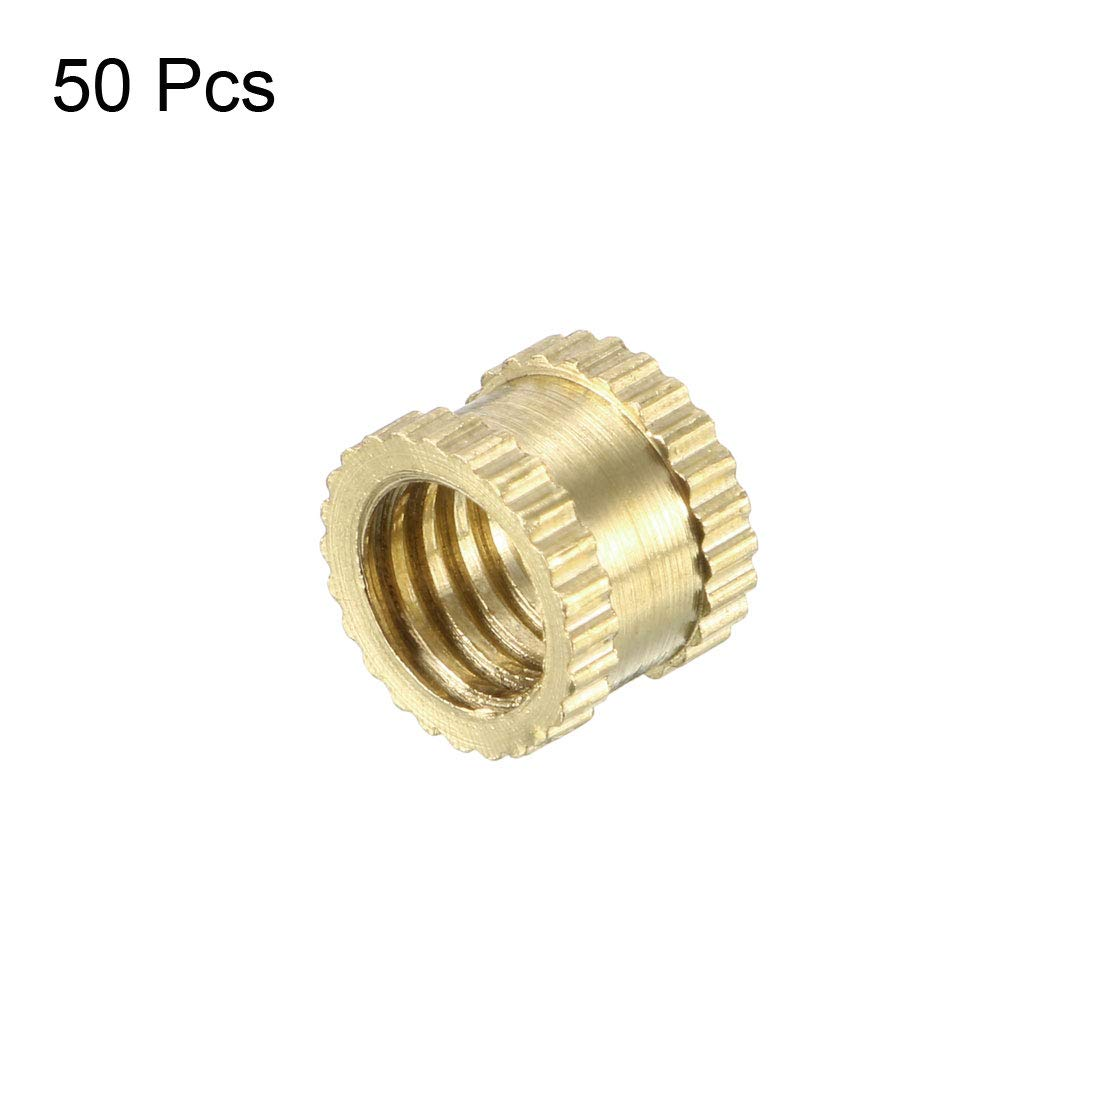 x 8mm 1//4-20 x 6mm OD L L Female Thread Brass Embedment Nuts uxcell Knurled Threaded Insert Pack of 25 1//4-20 x 6mm OD x 8mm Female Thread Brass Embedment Nuts